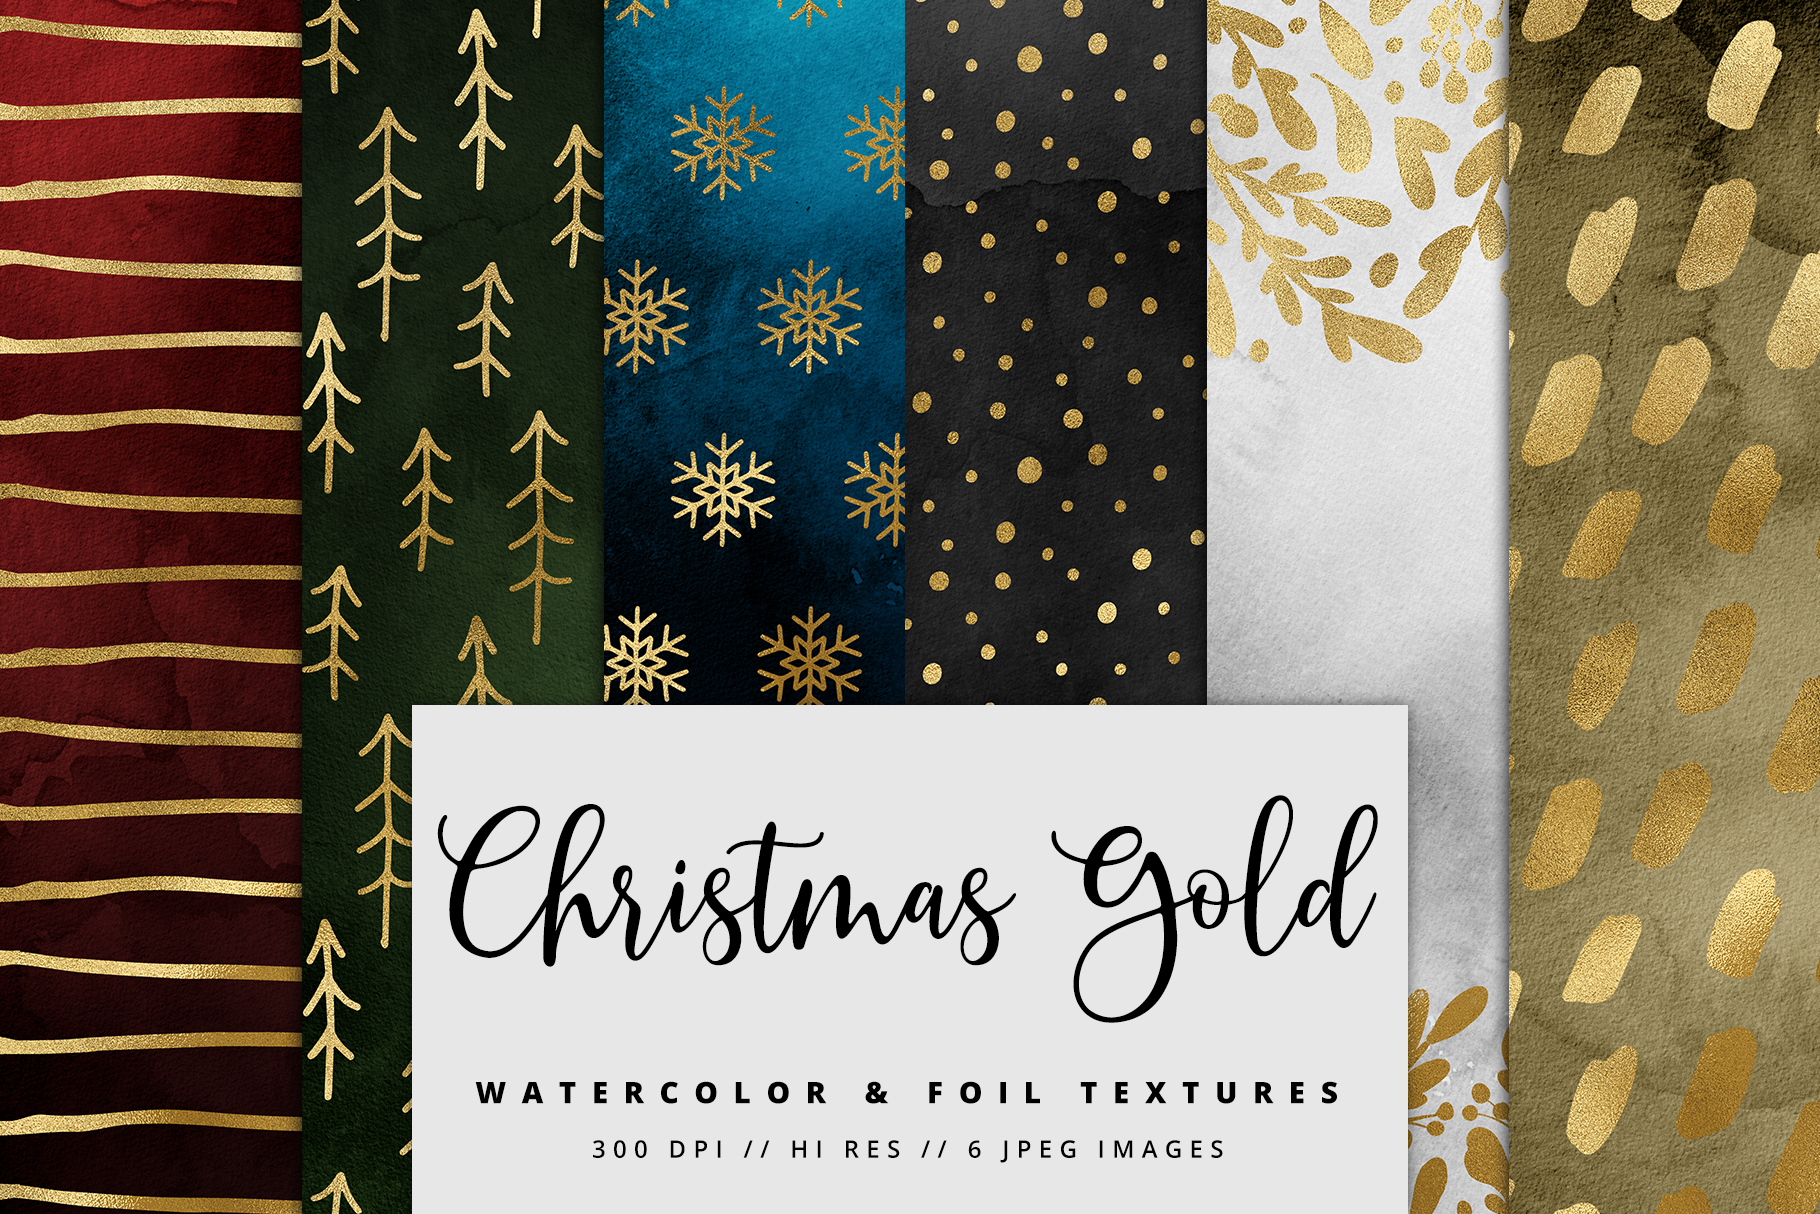 Christmas Gold Watercolor Foil Textures | 6 Pack example image 1